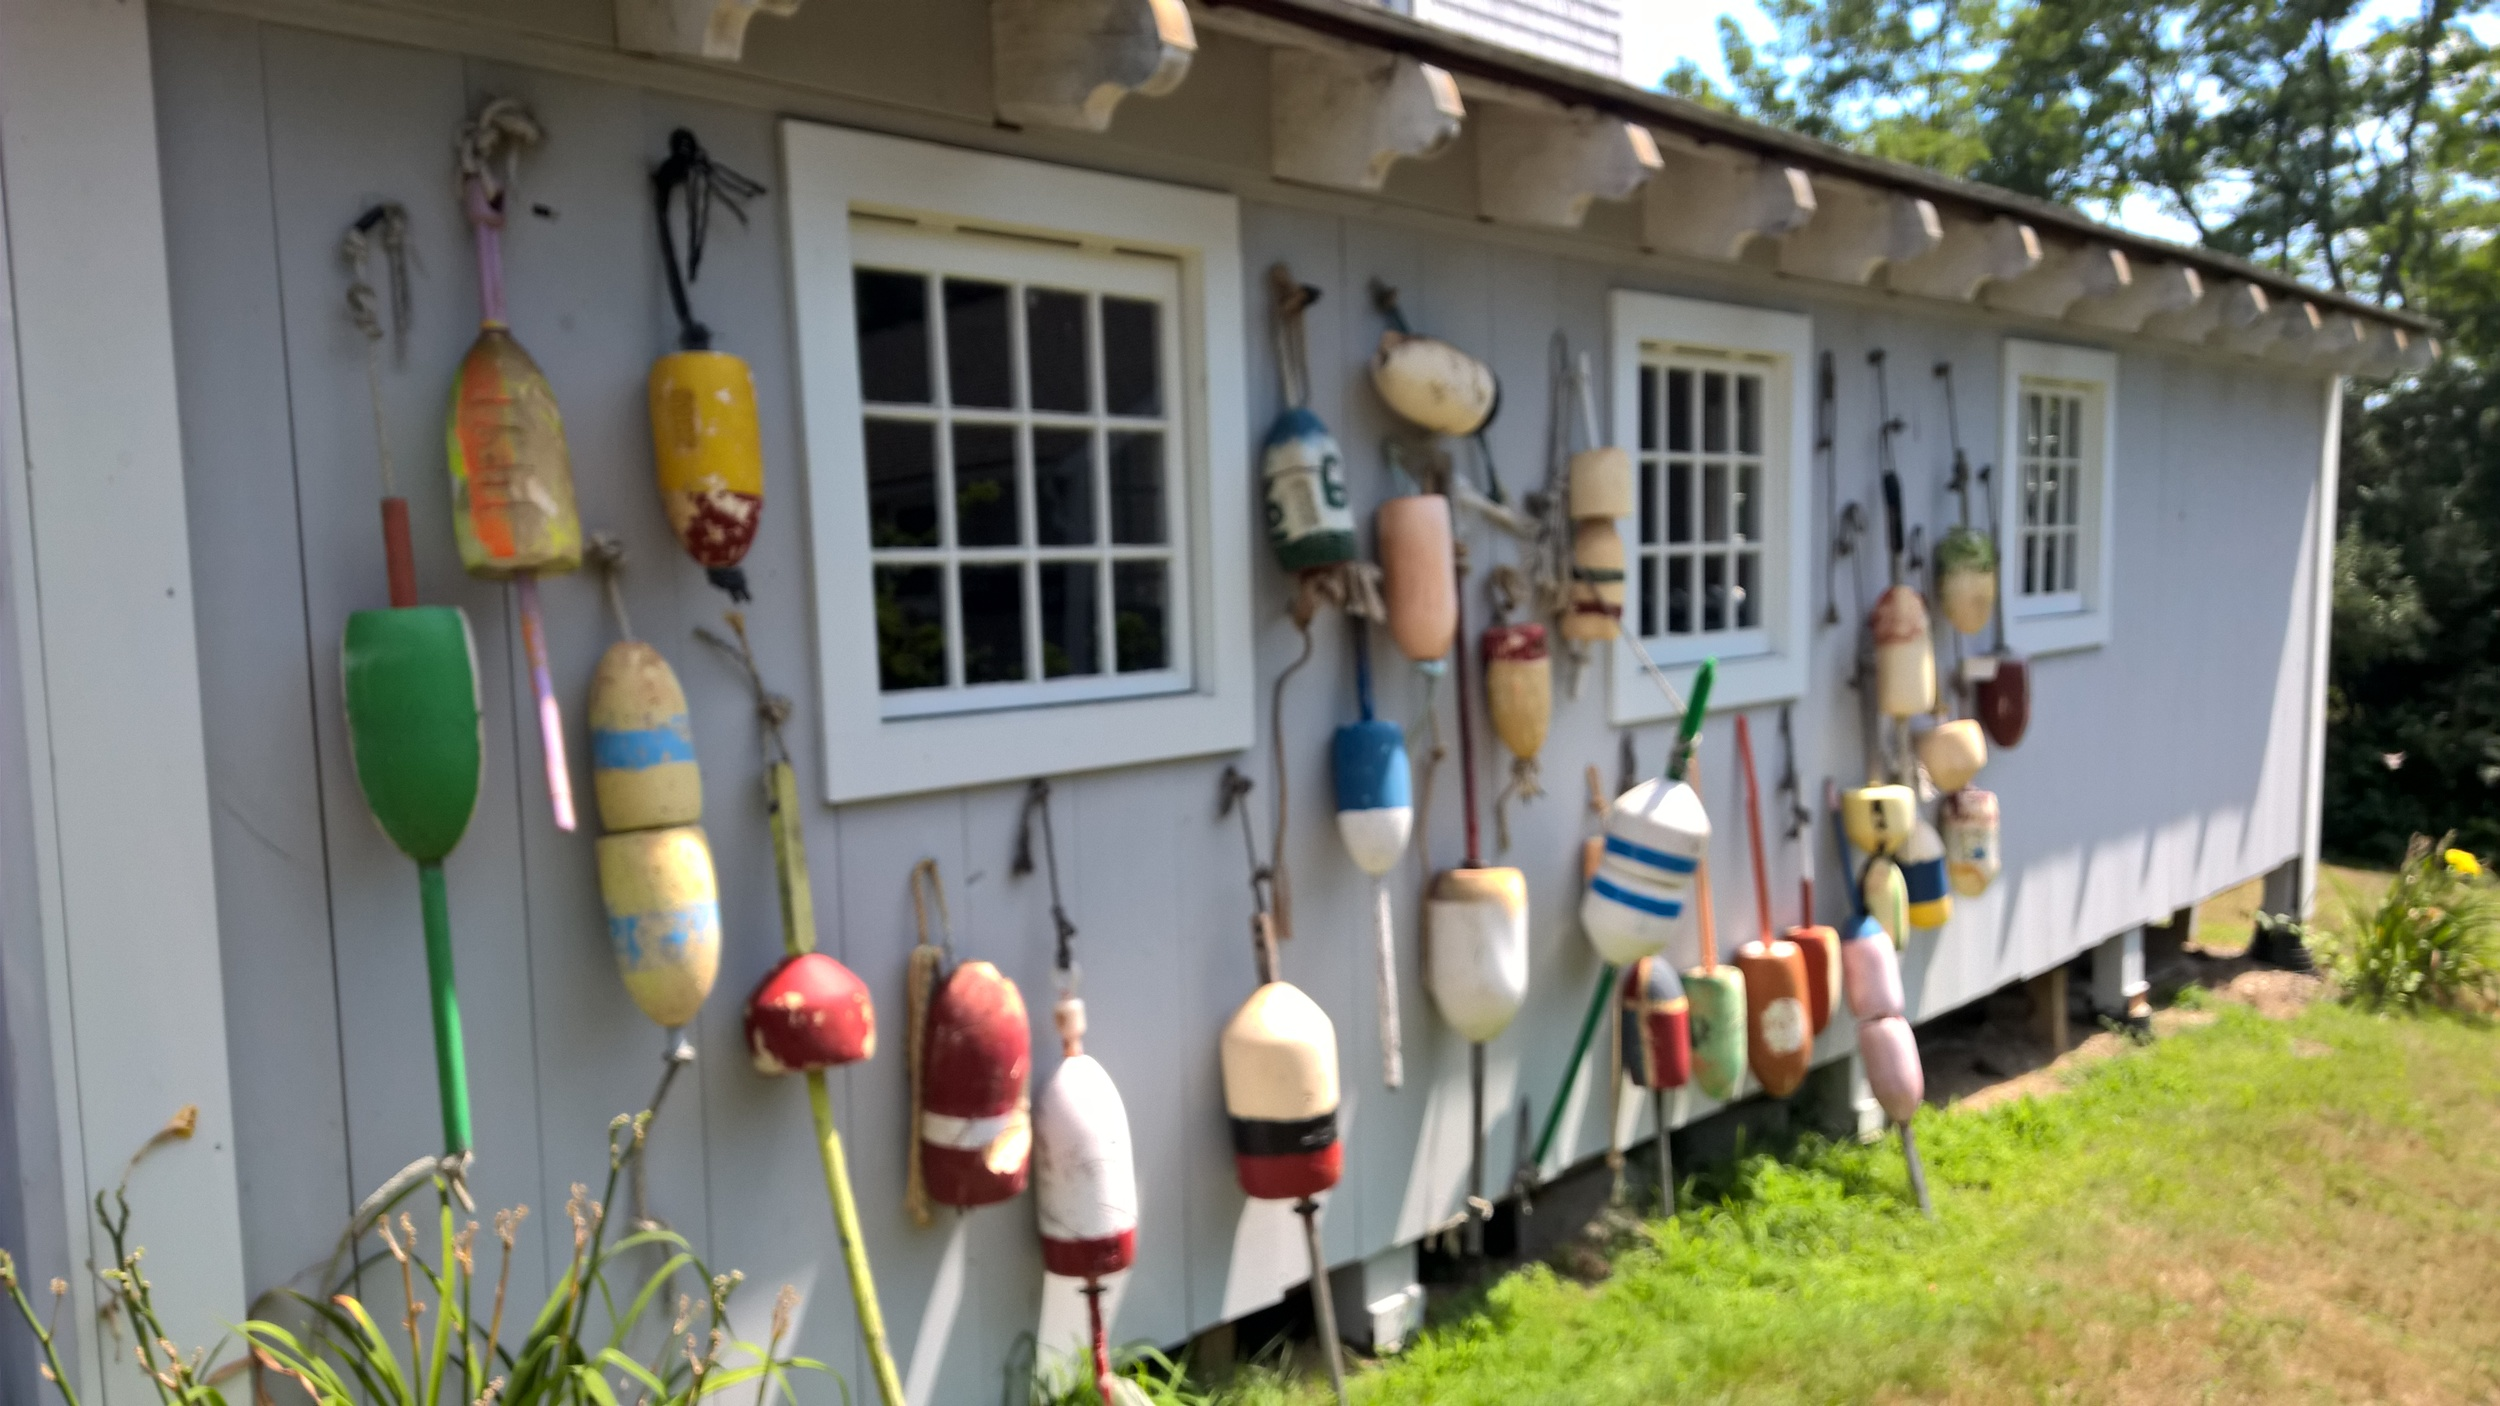 Buoys on the Boathouse